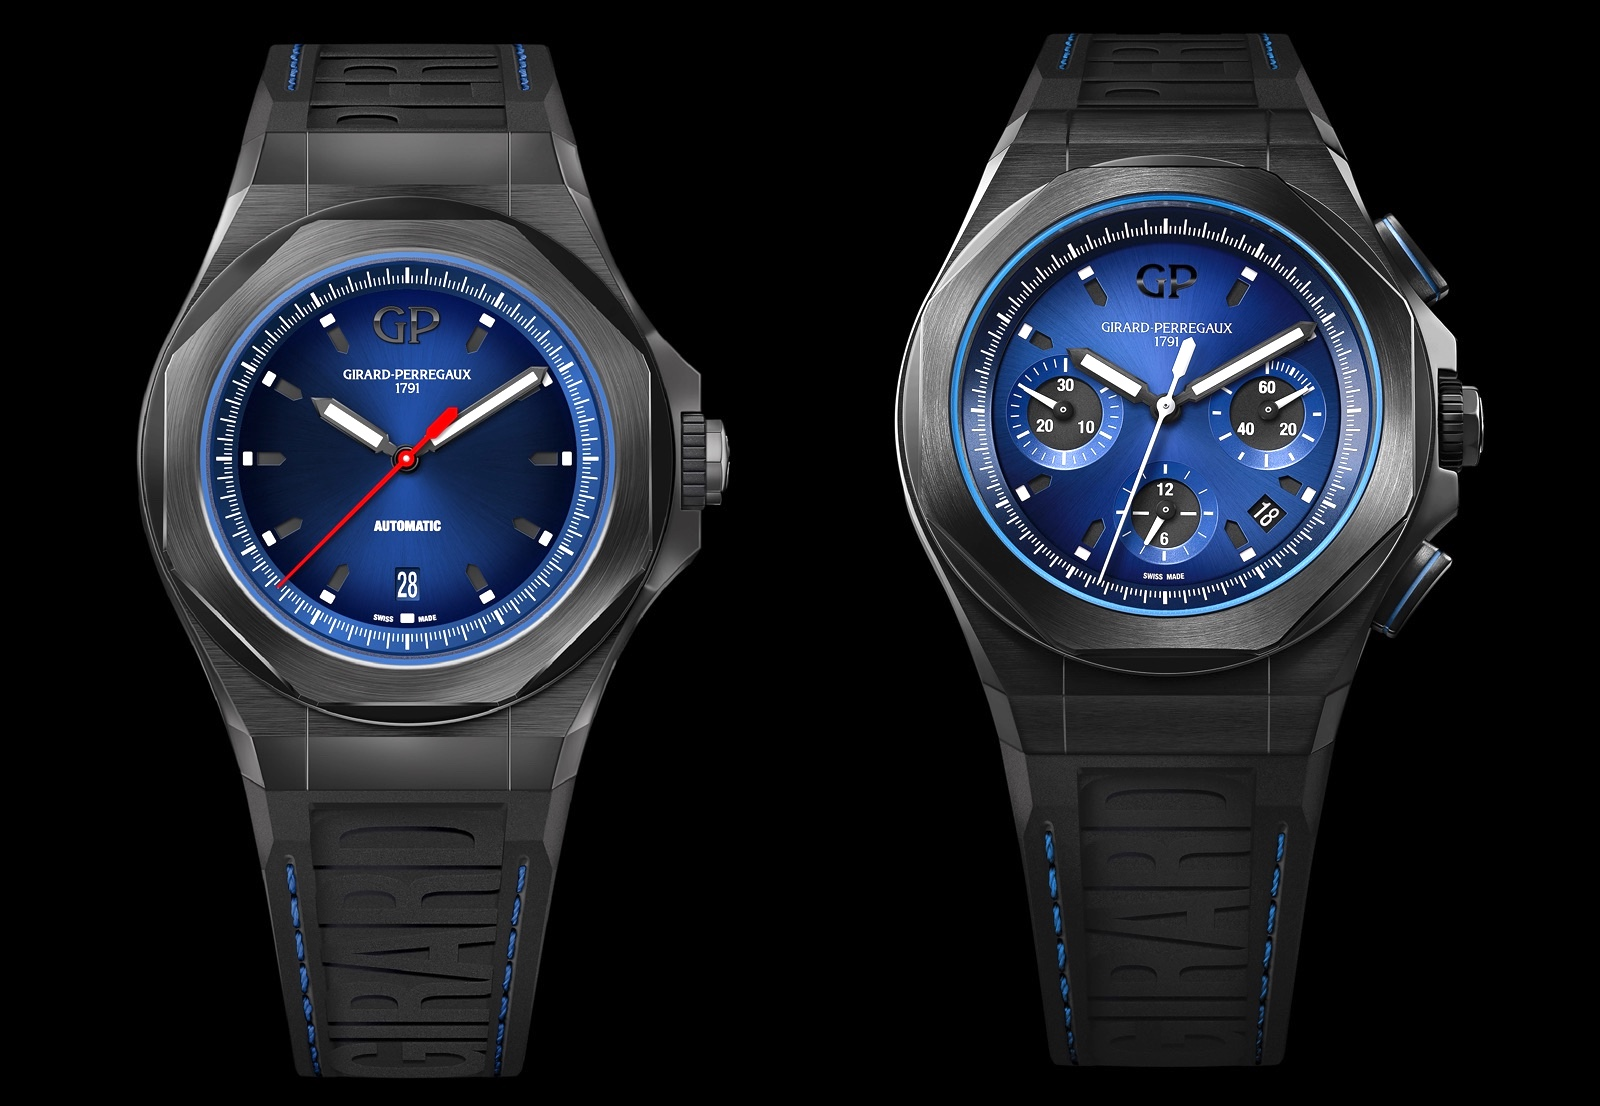 Girard-Perregaux Laureato Absolute Chronograph vs Automatic